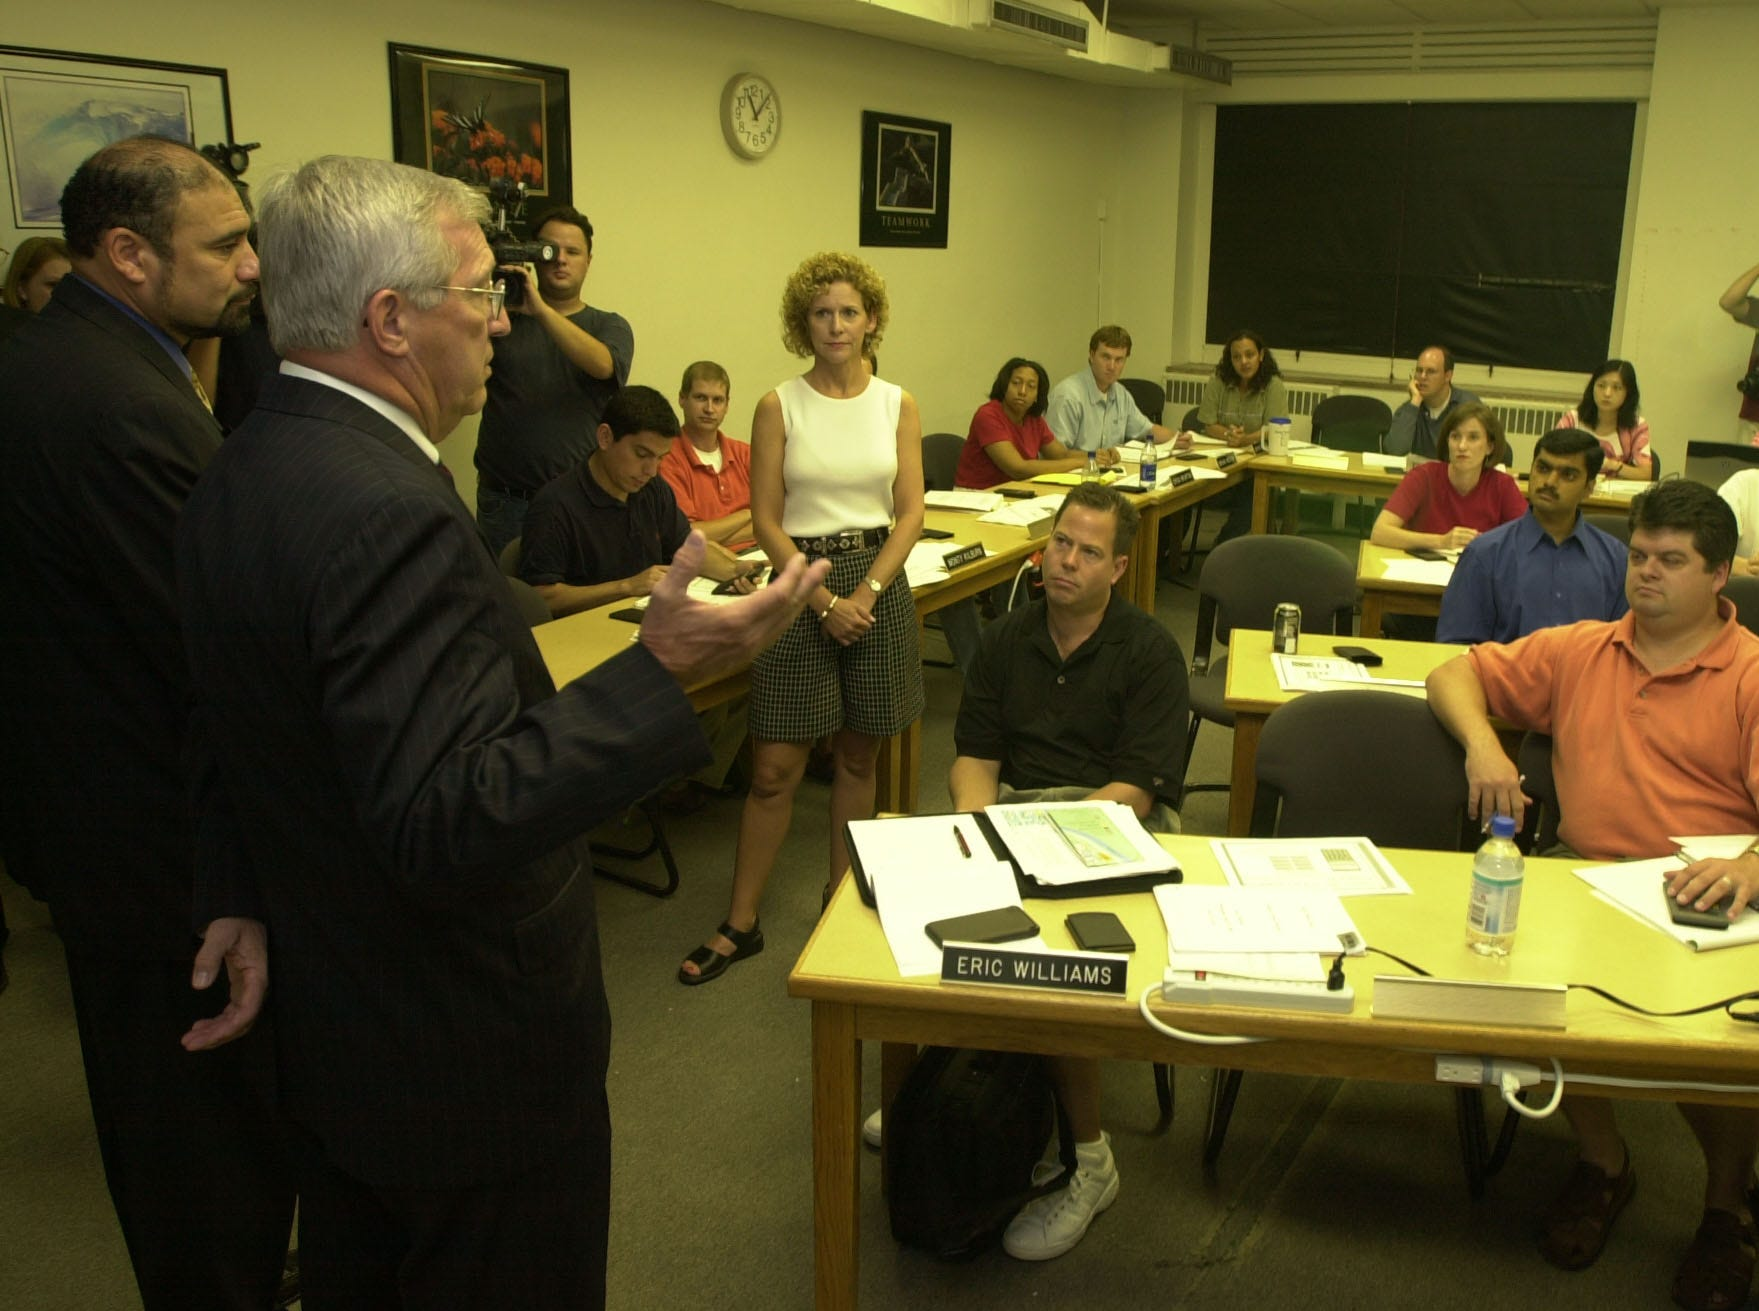 Tennessee Governor Don Sundquist stopped in Suzan Murphy's finance class during his tour of the Glocker Business Administration Building Wednesday. Sundquist and state representative Joe Armstrong took questions from students in Professor Murphy's class who happened to be talking about state bonds on Wednesday.